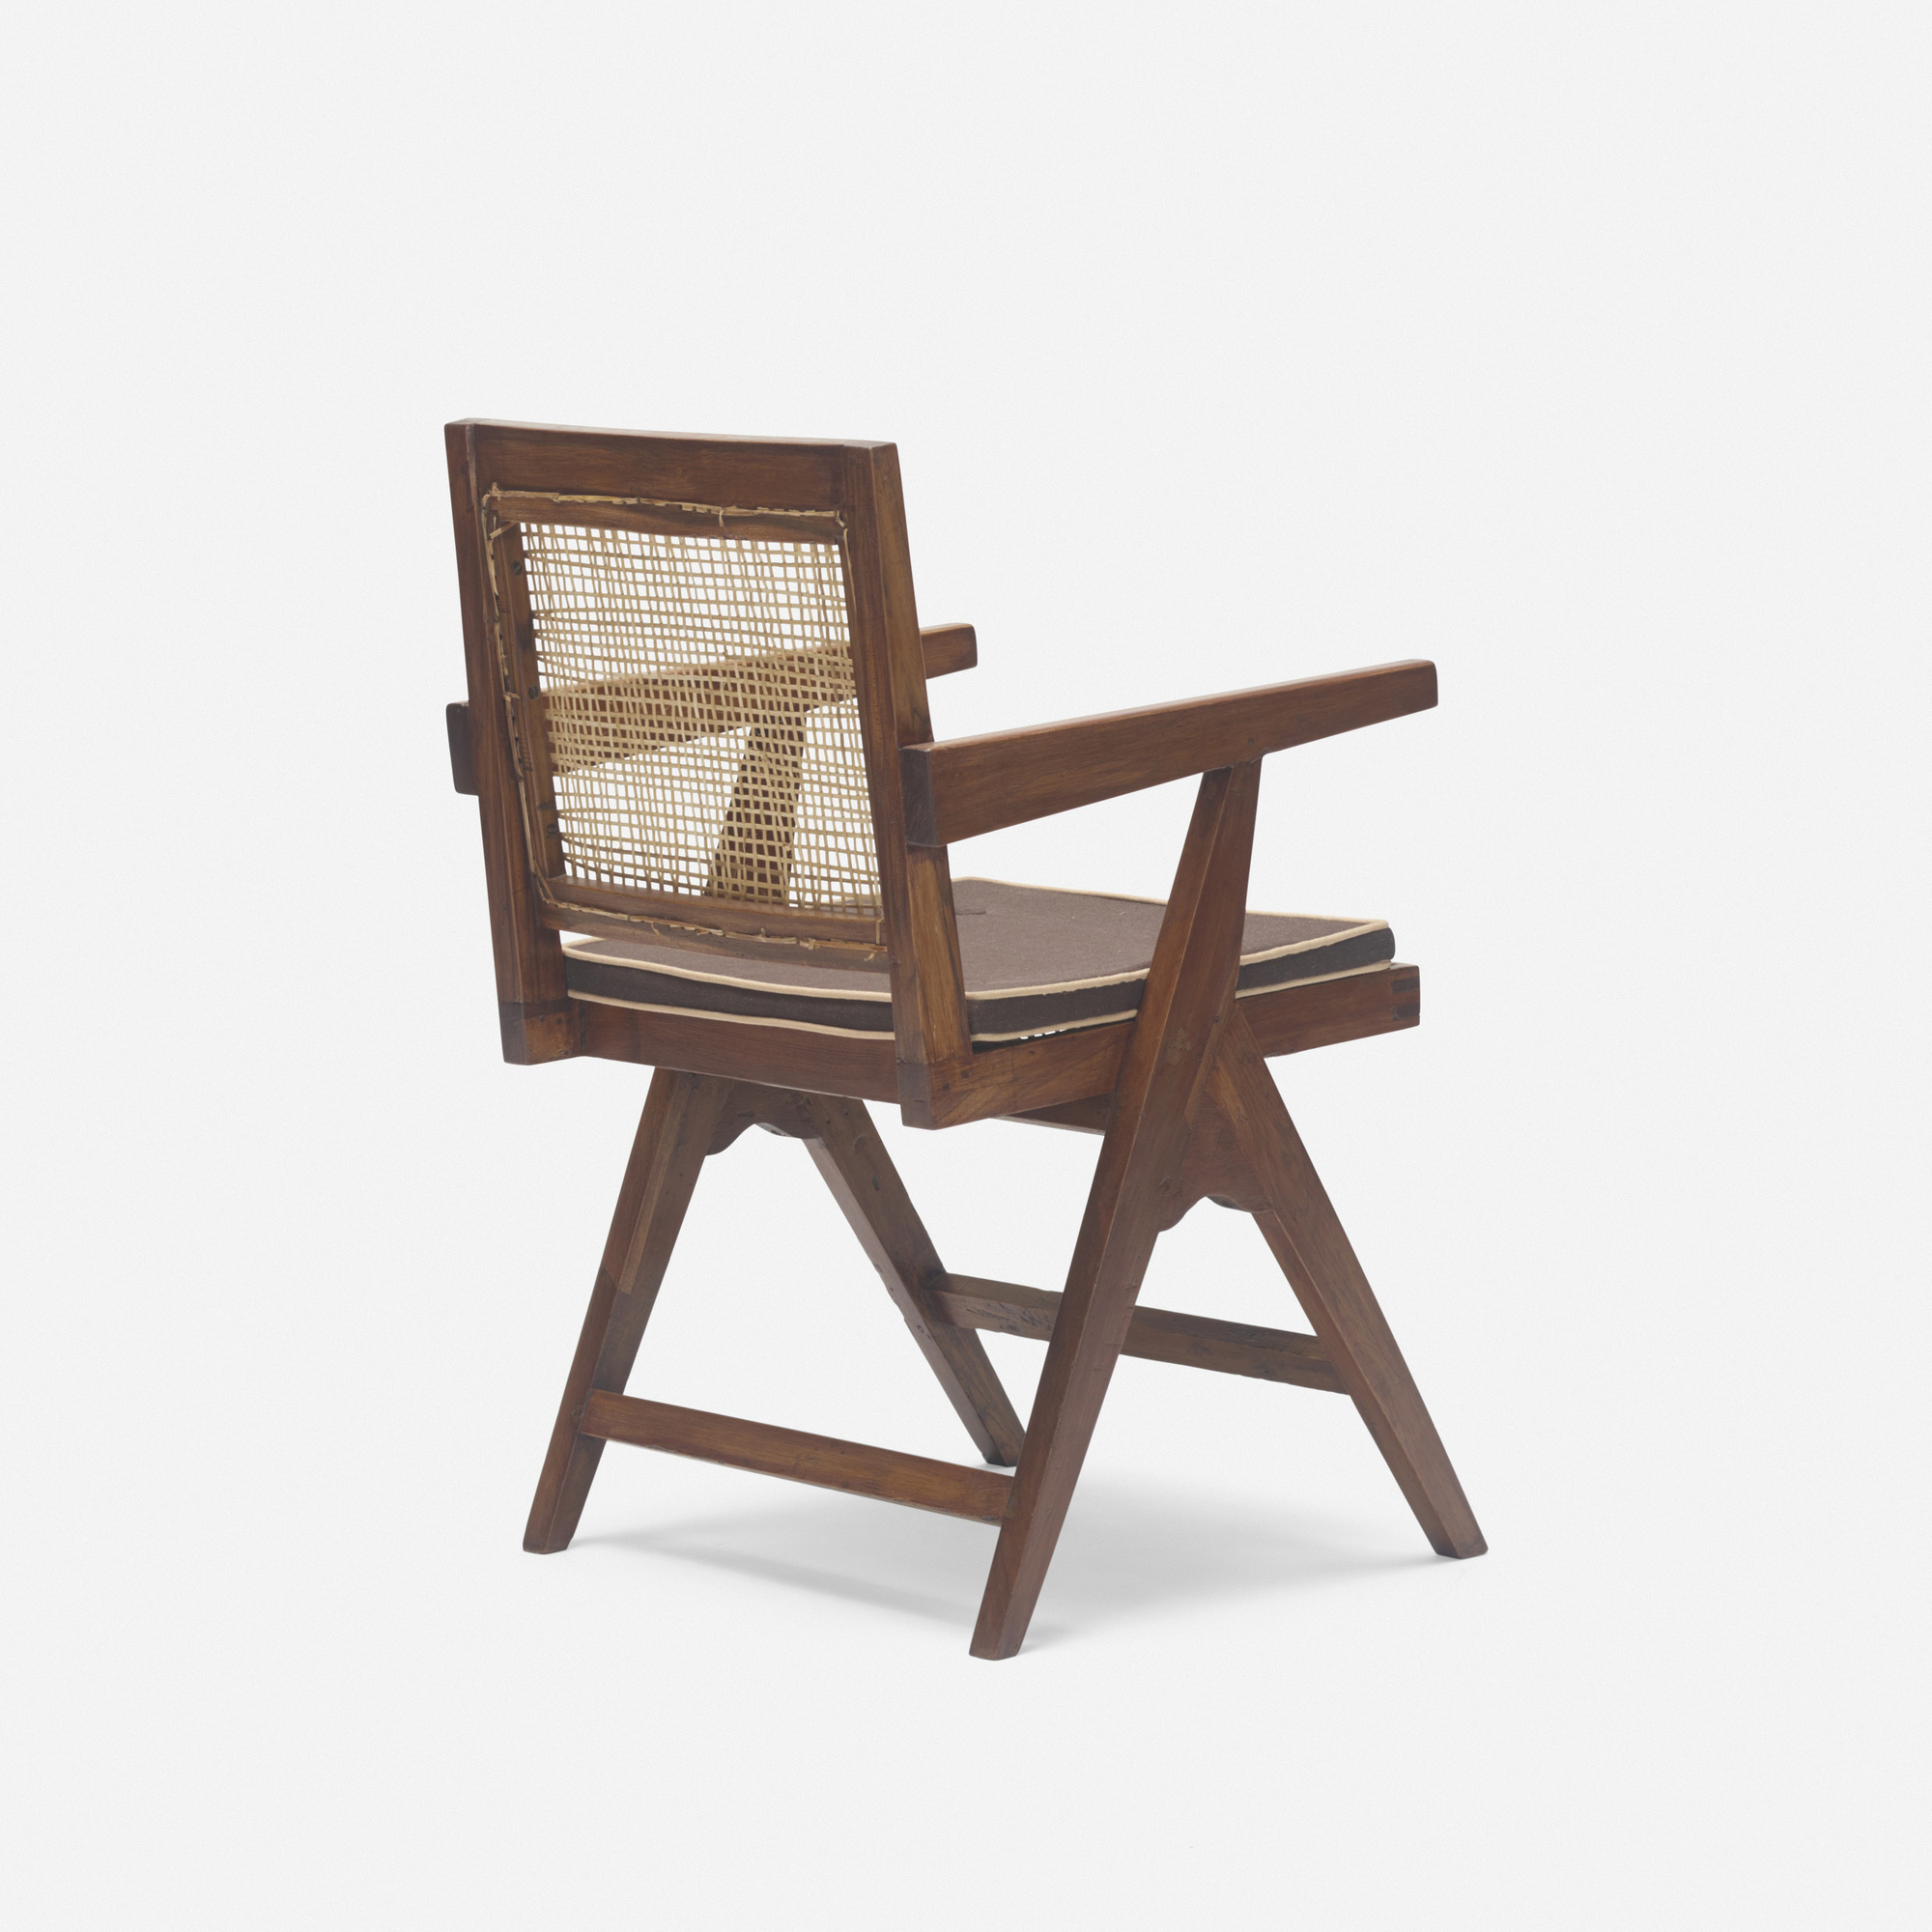 124: Pierre Jeanneret / armchair from Chandigarh (2 of 3)